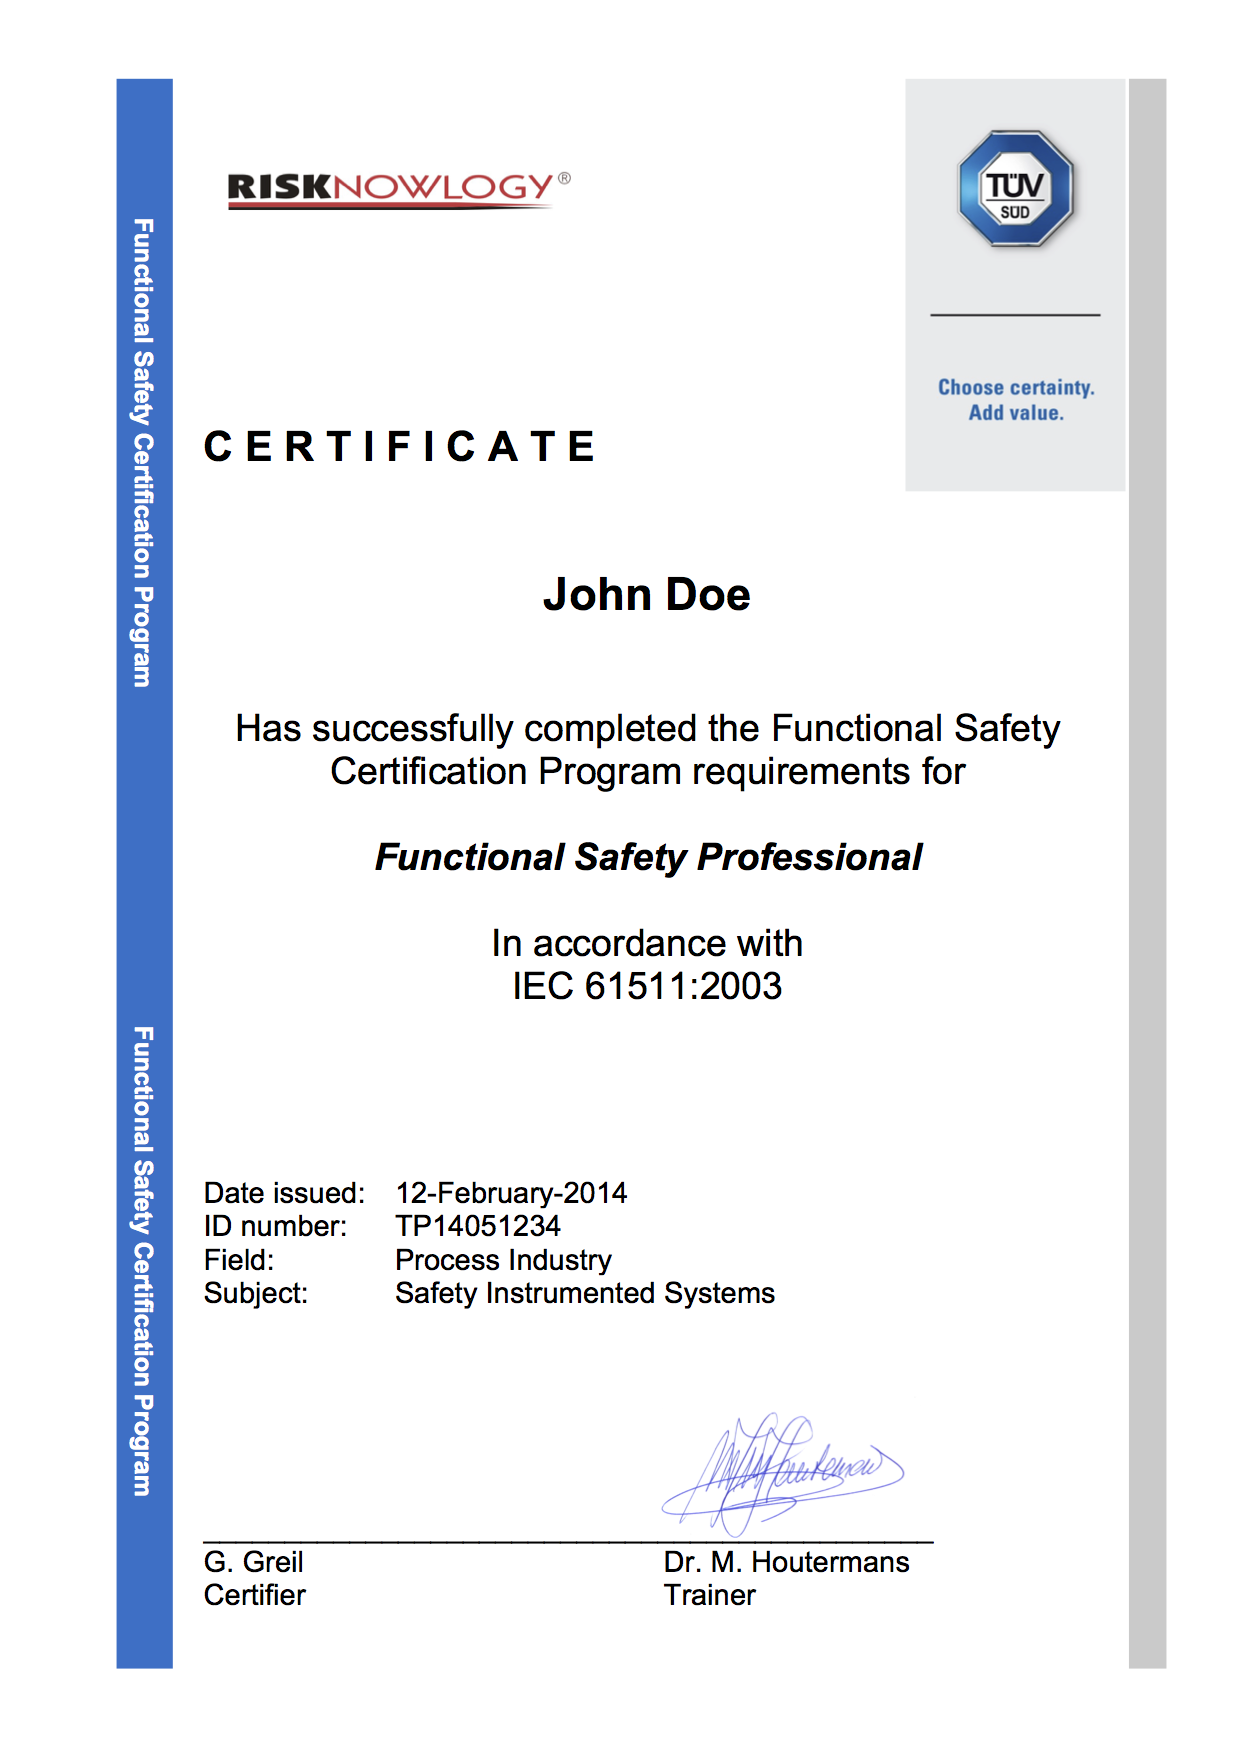 Risknowlogy tuv iec 61511 functional safety training pembroke sample certificate tuv functional safety course stavanger iec 61511 june xflitez Images